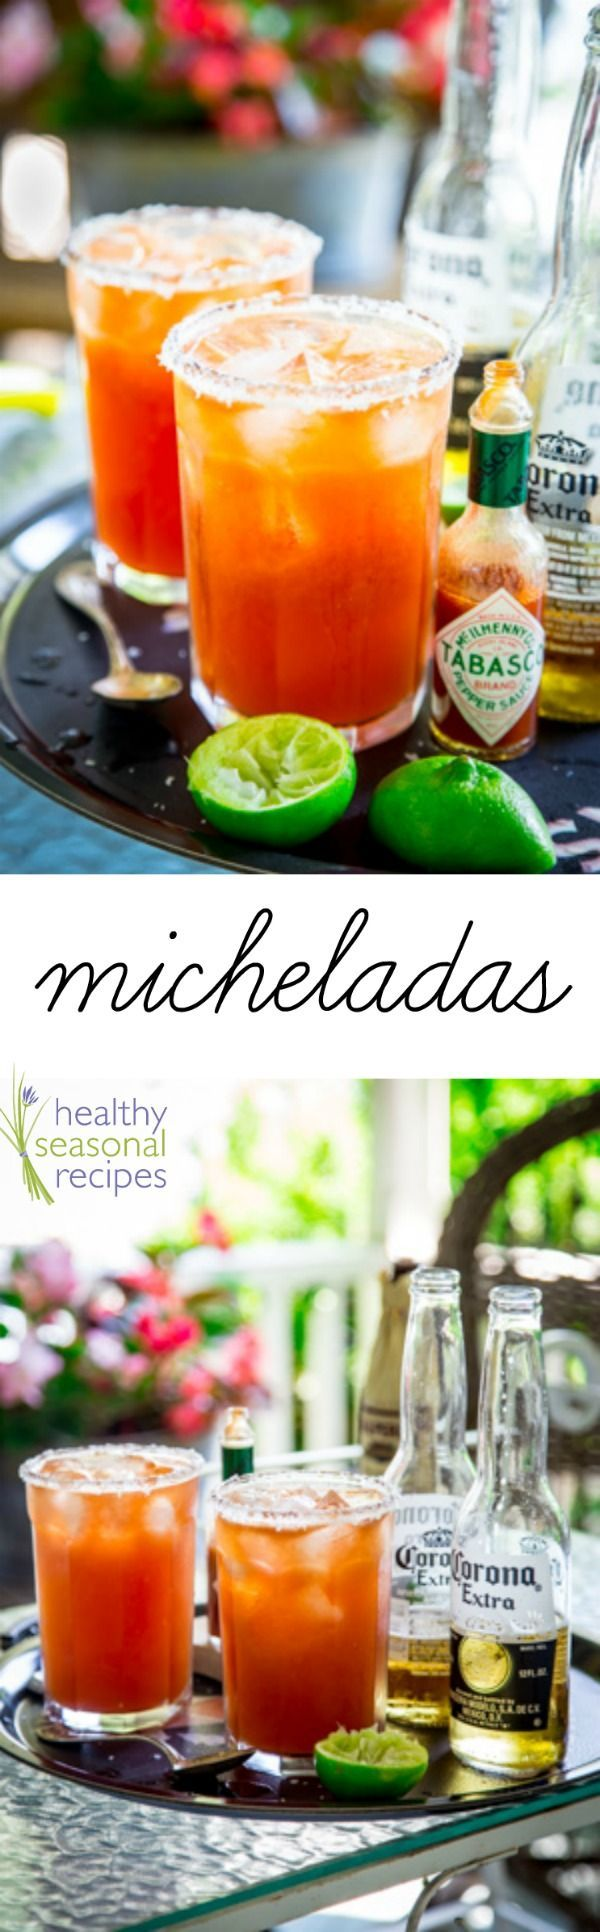 Here's how to make killer micheladas, also known as red beer. It's a savory beer drink, served with ice, lime, hot sauce and tomato juice. They are super refreshing on a hot summer evening. Healthy Seasonal Recipes by Katie Webster